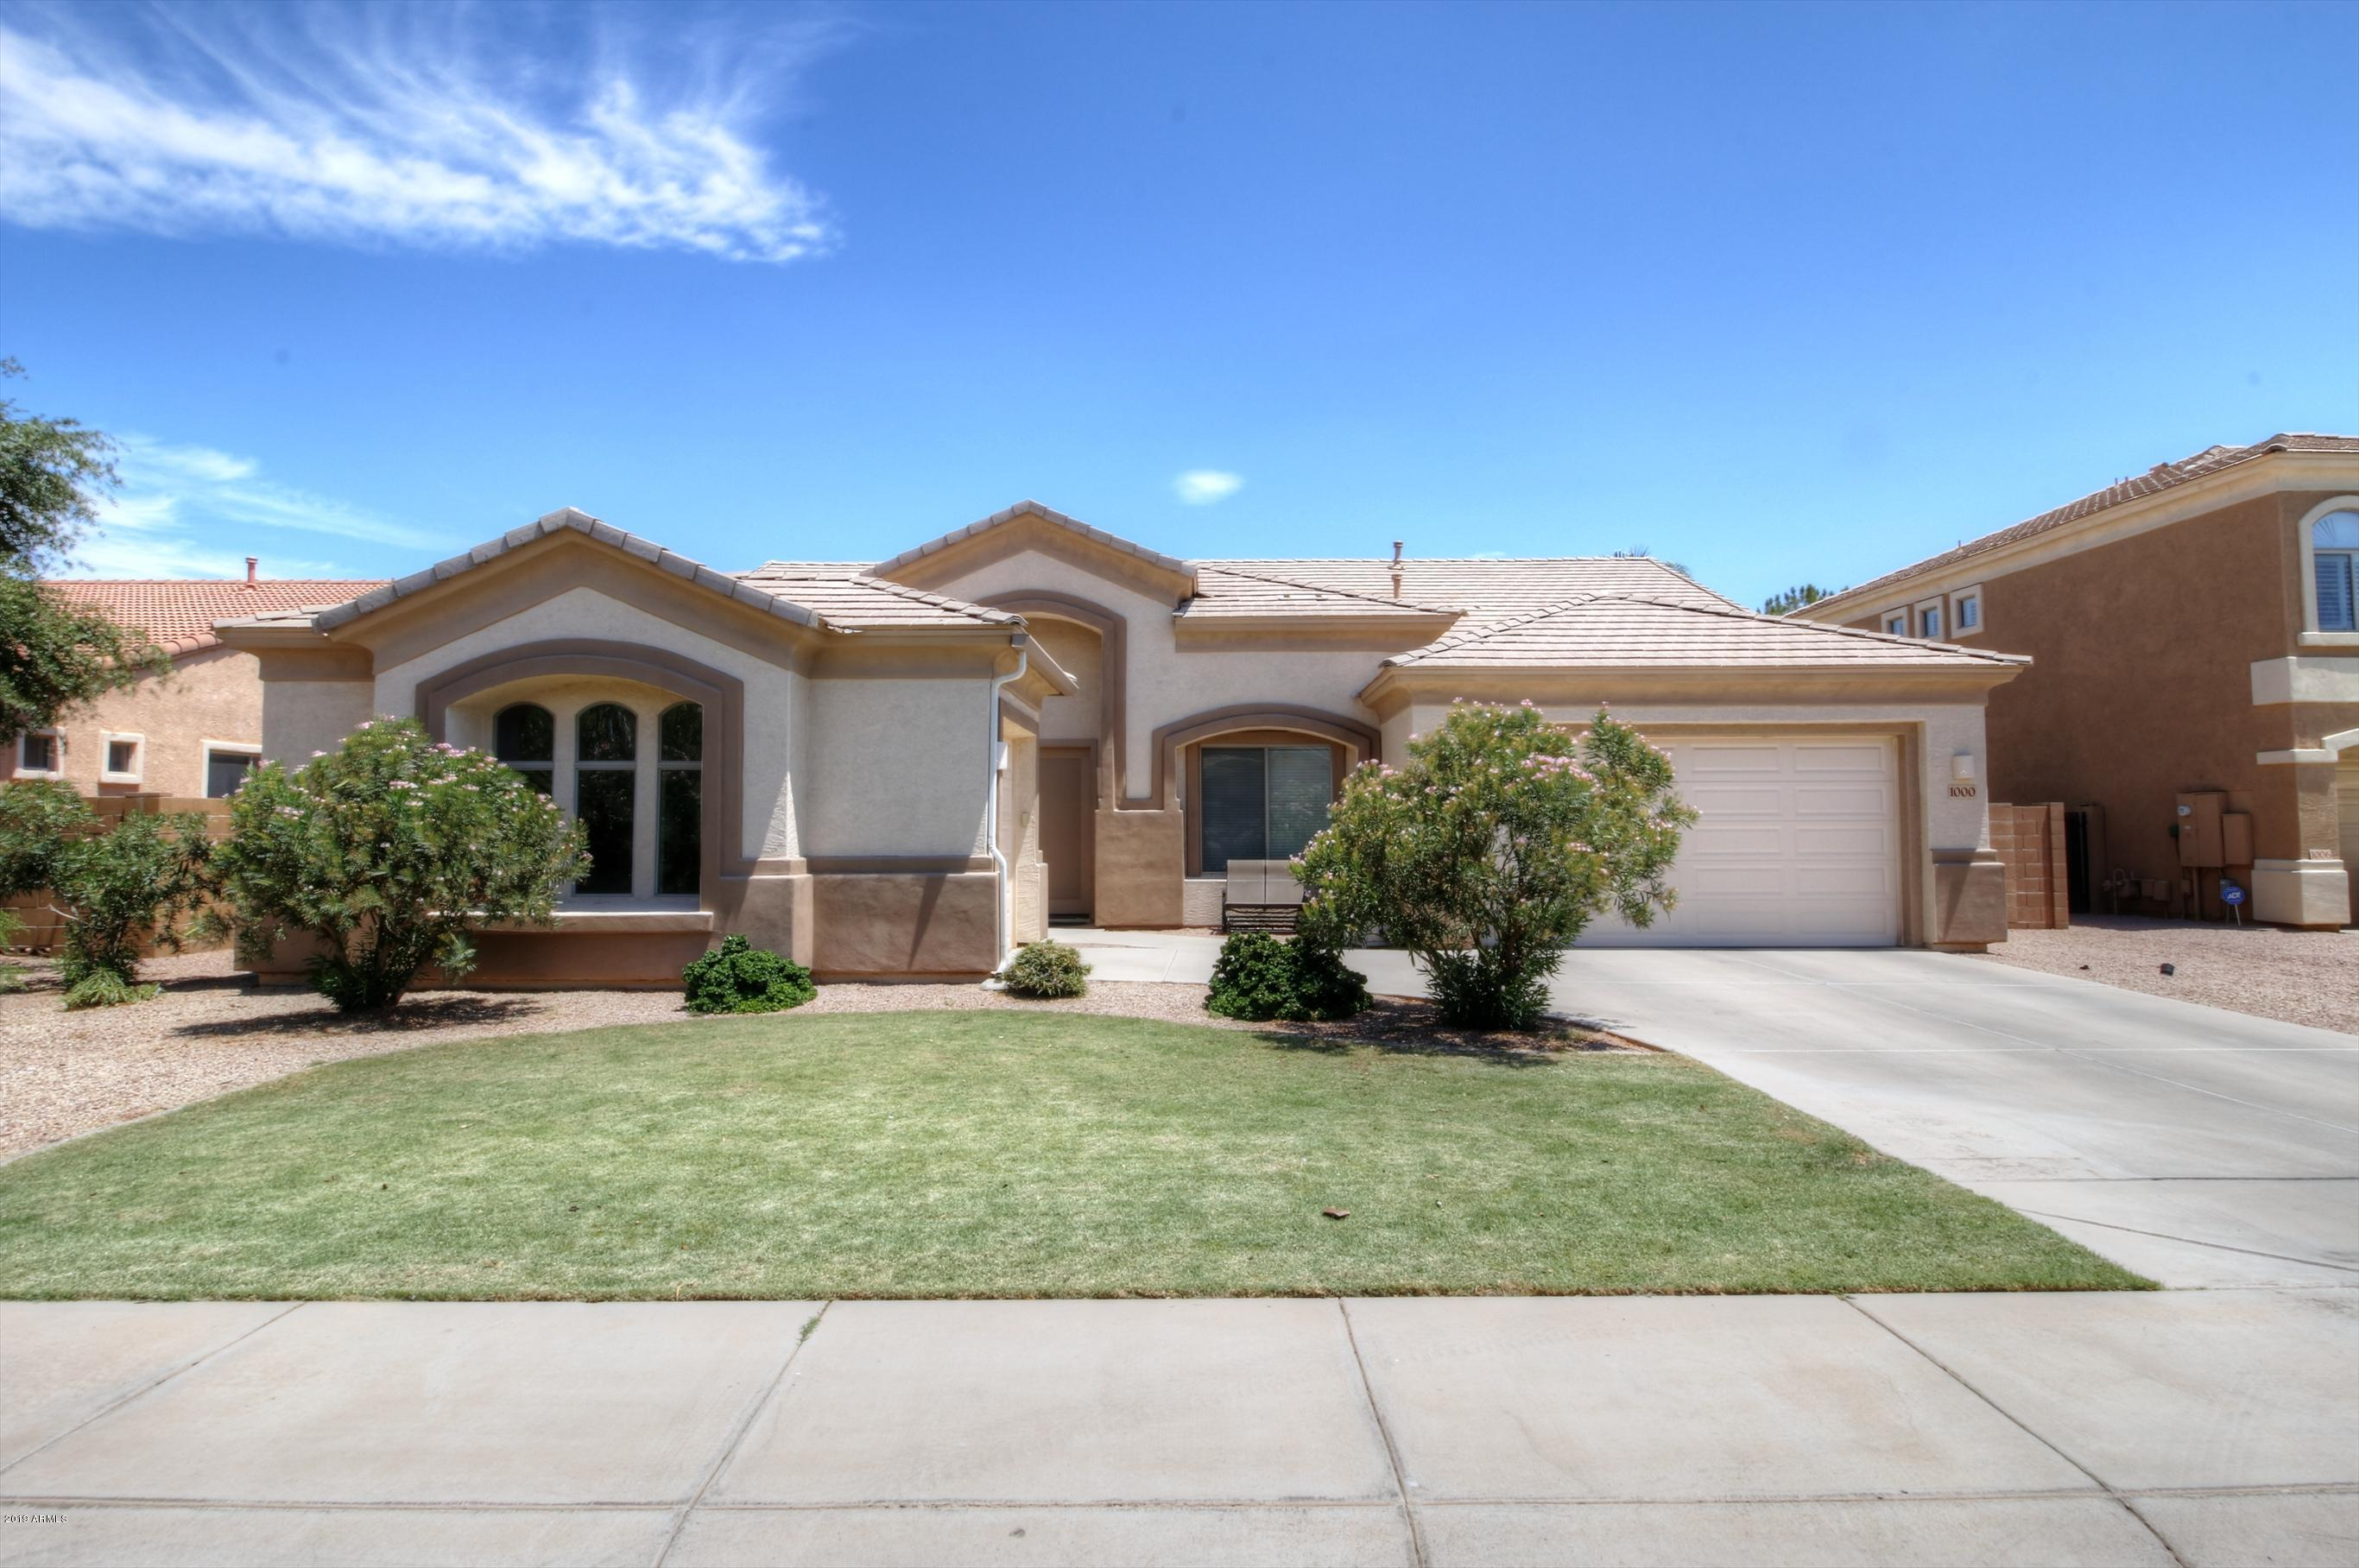 Photo of 1000 E BENRICH Drive, Gilbert, AZ 85295